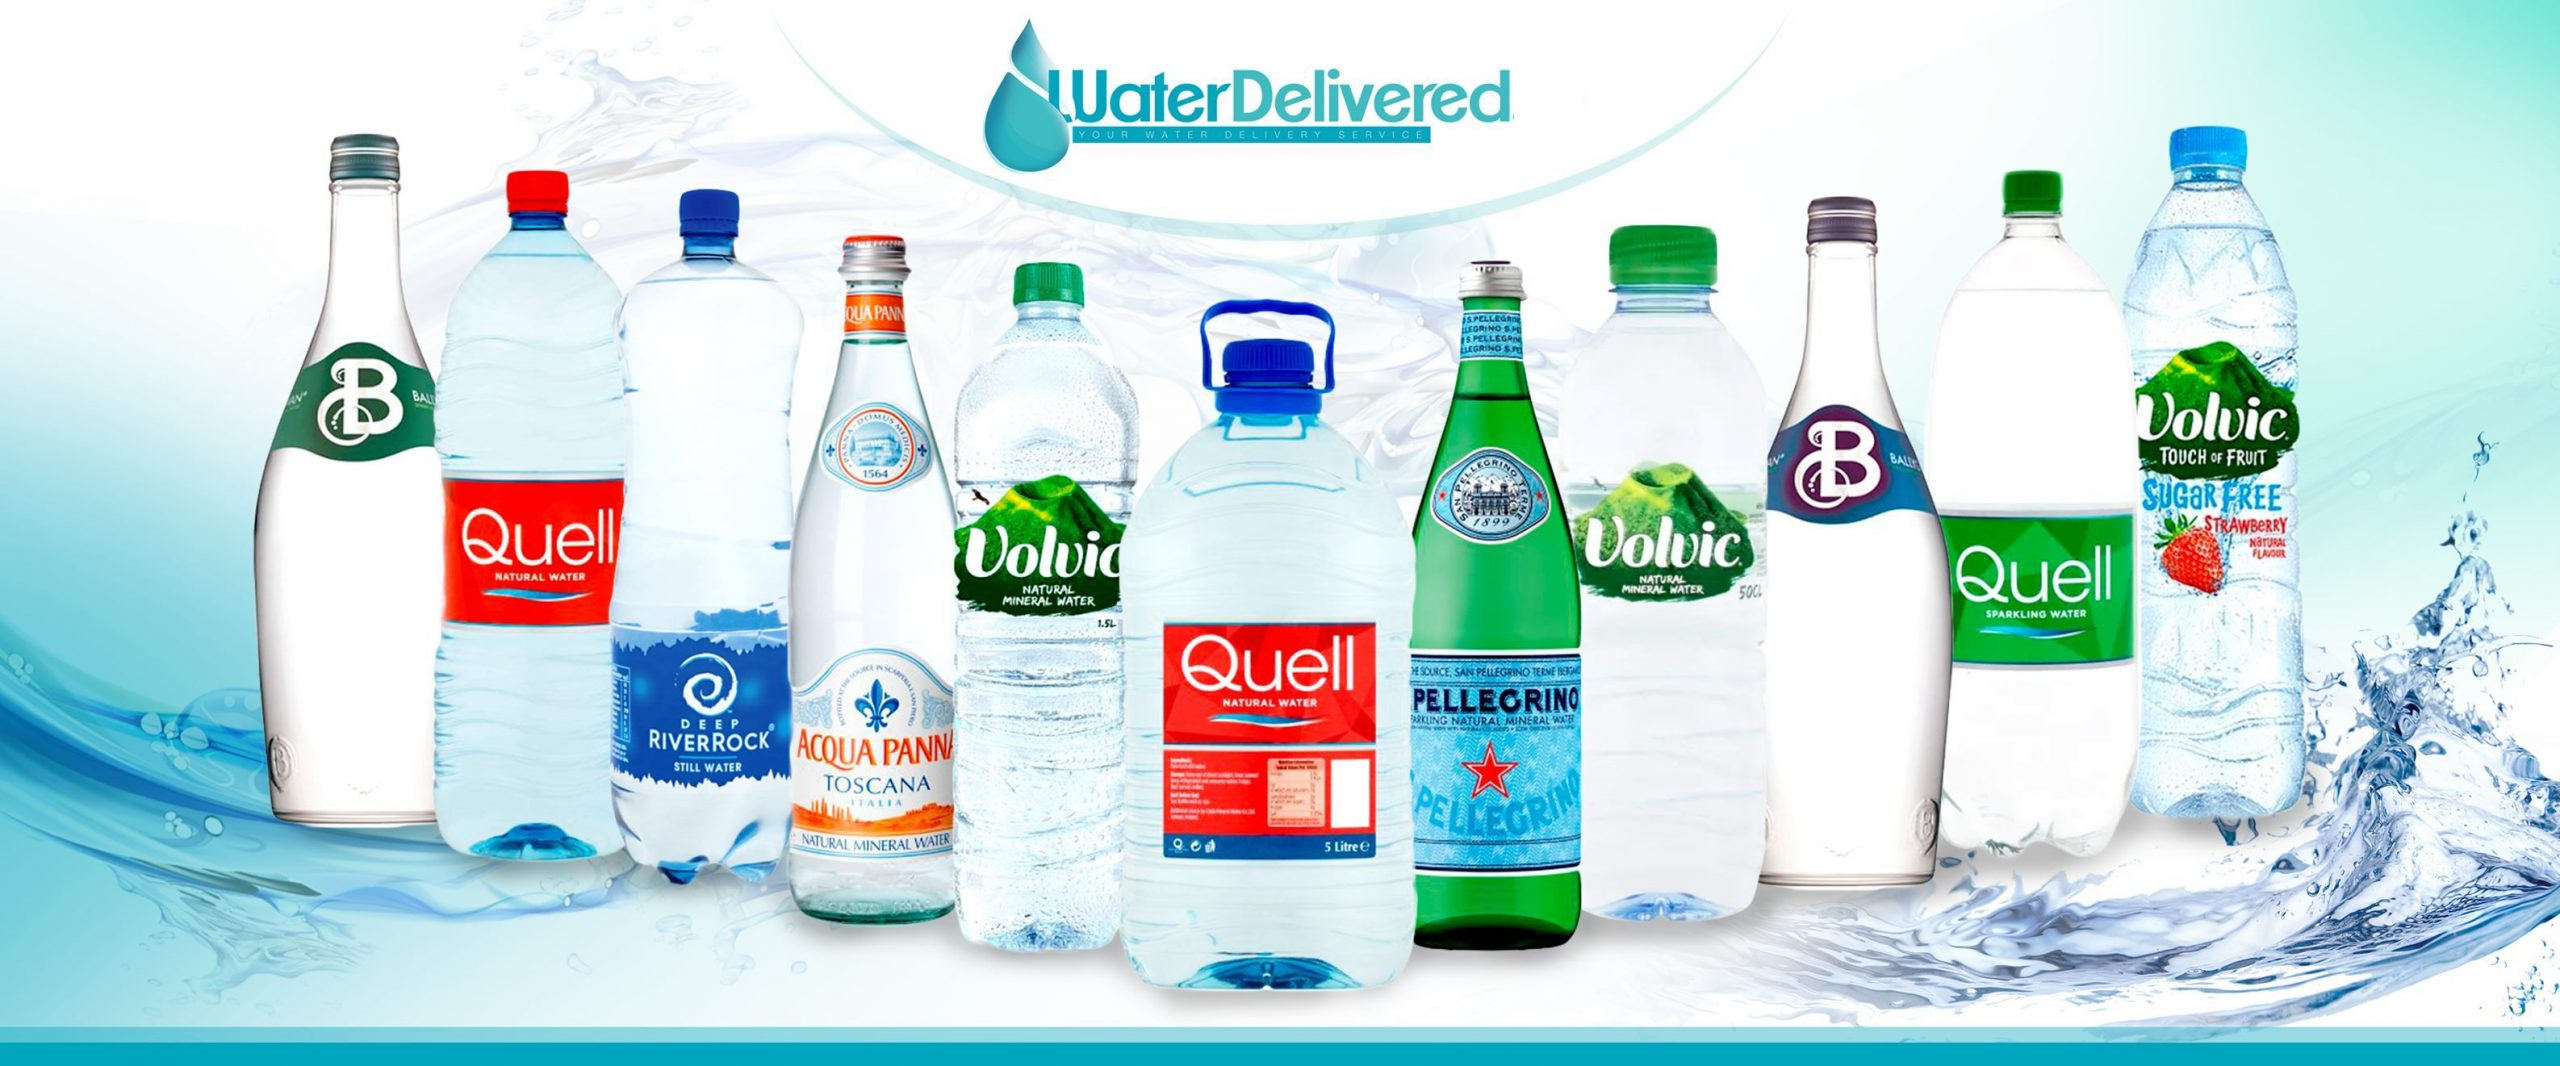 waterdelivered.ie picture of bottled water